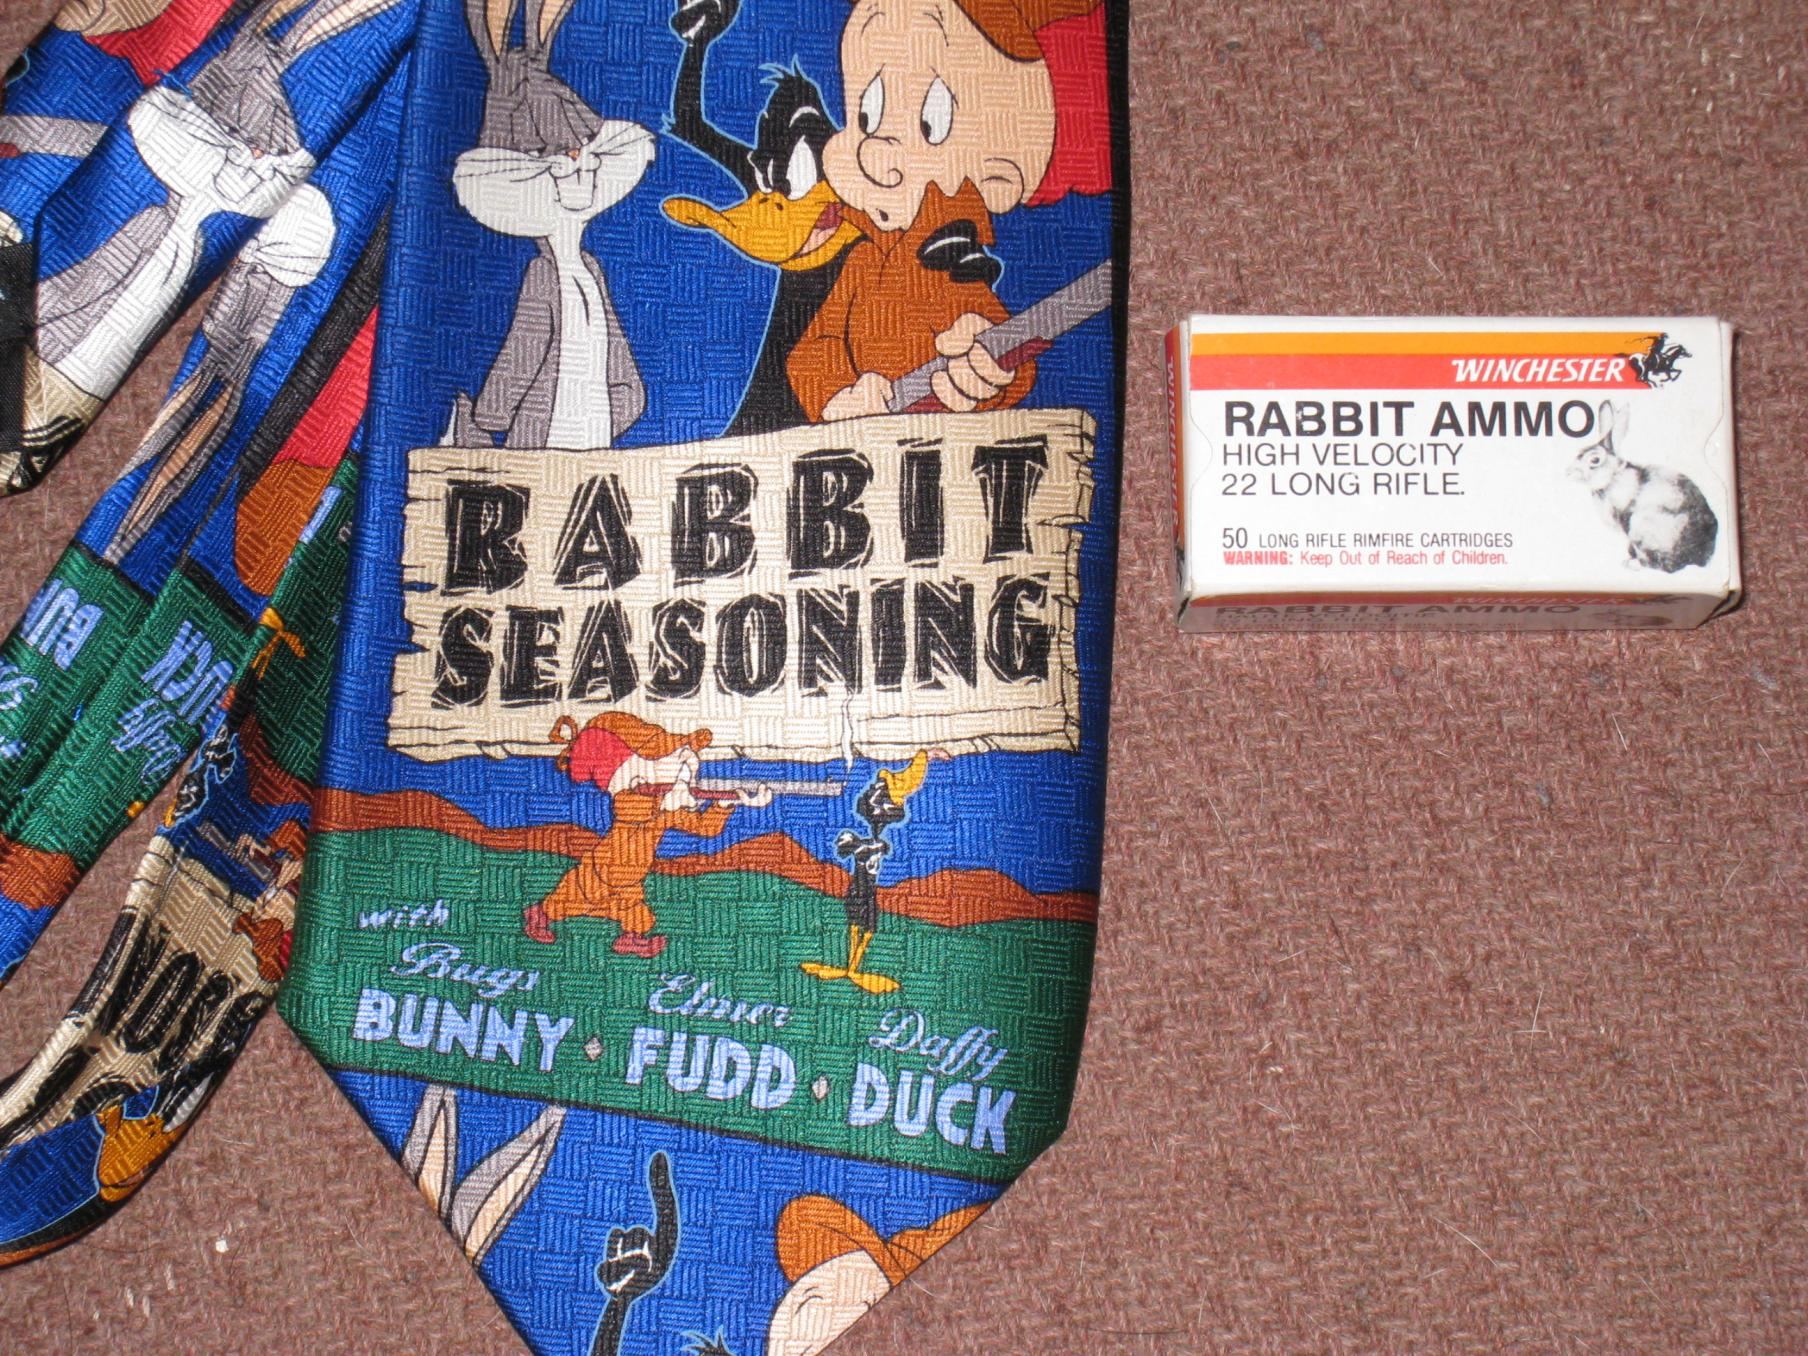 Where's Bunny-picture-018.jpg